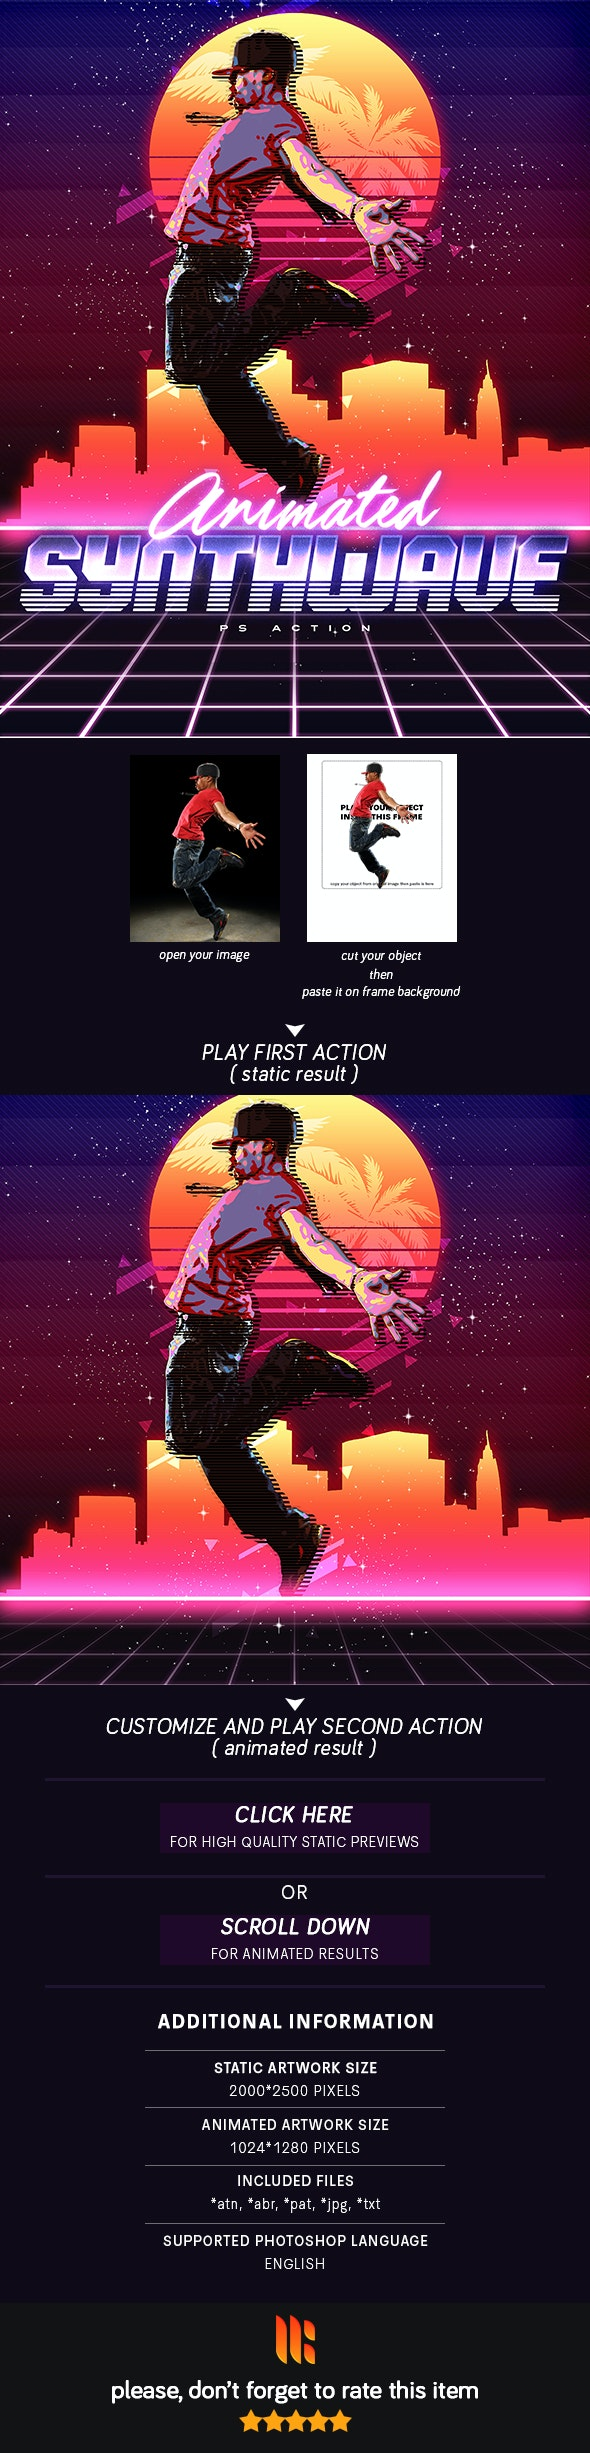 Animated 80's Synthwave Poster - Photoshop Action - Photo Effects Actions